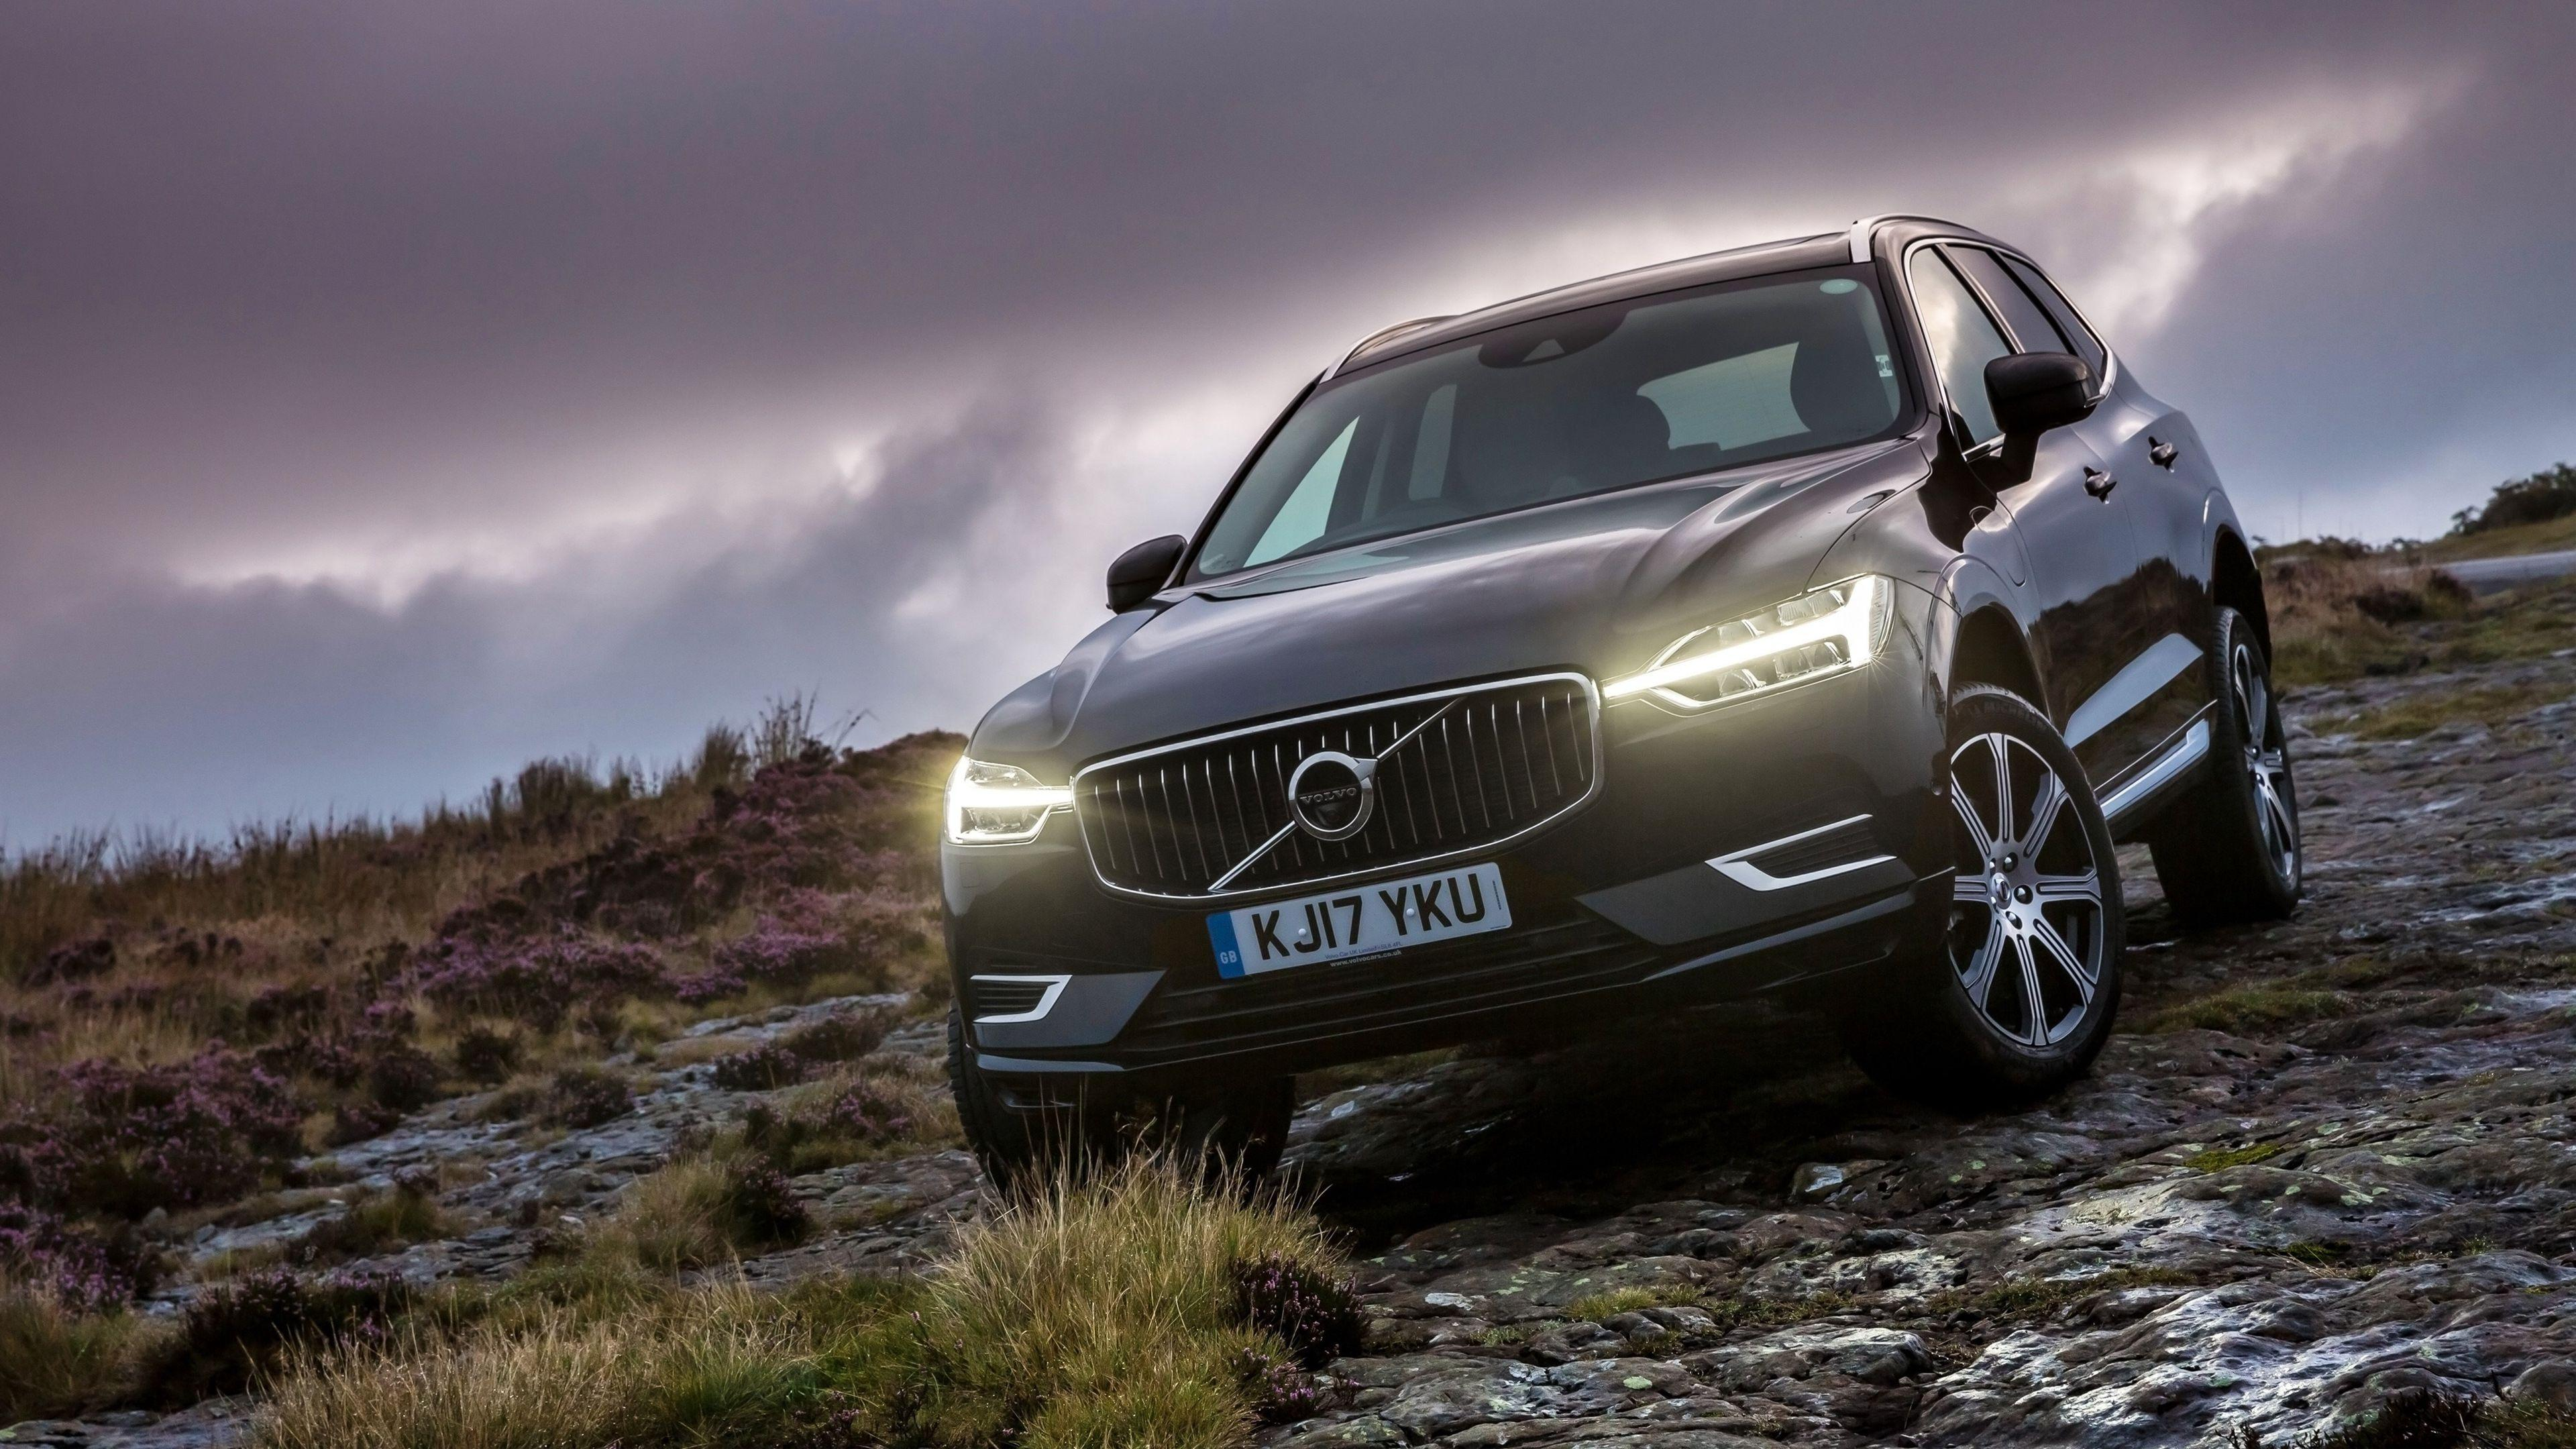 Volvo XC60 Wallpapers and Backgrounds Image